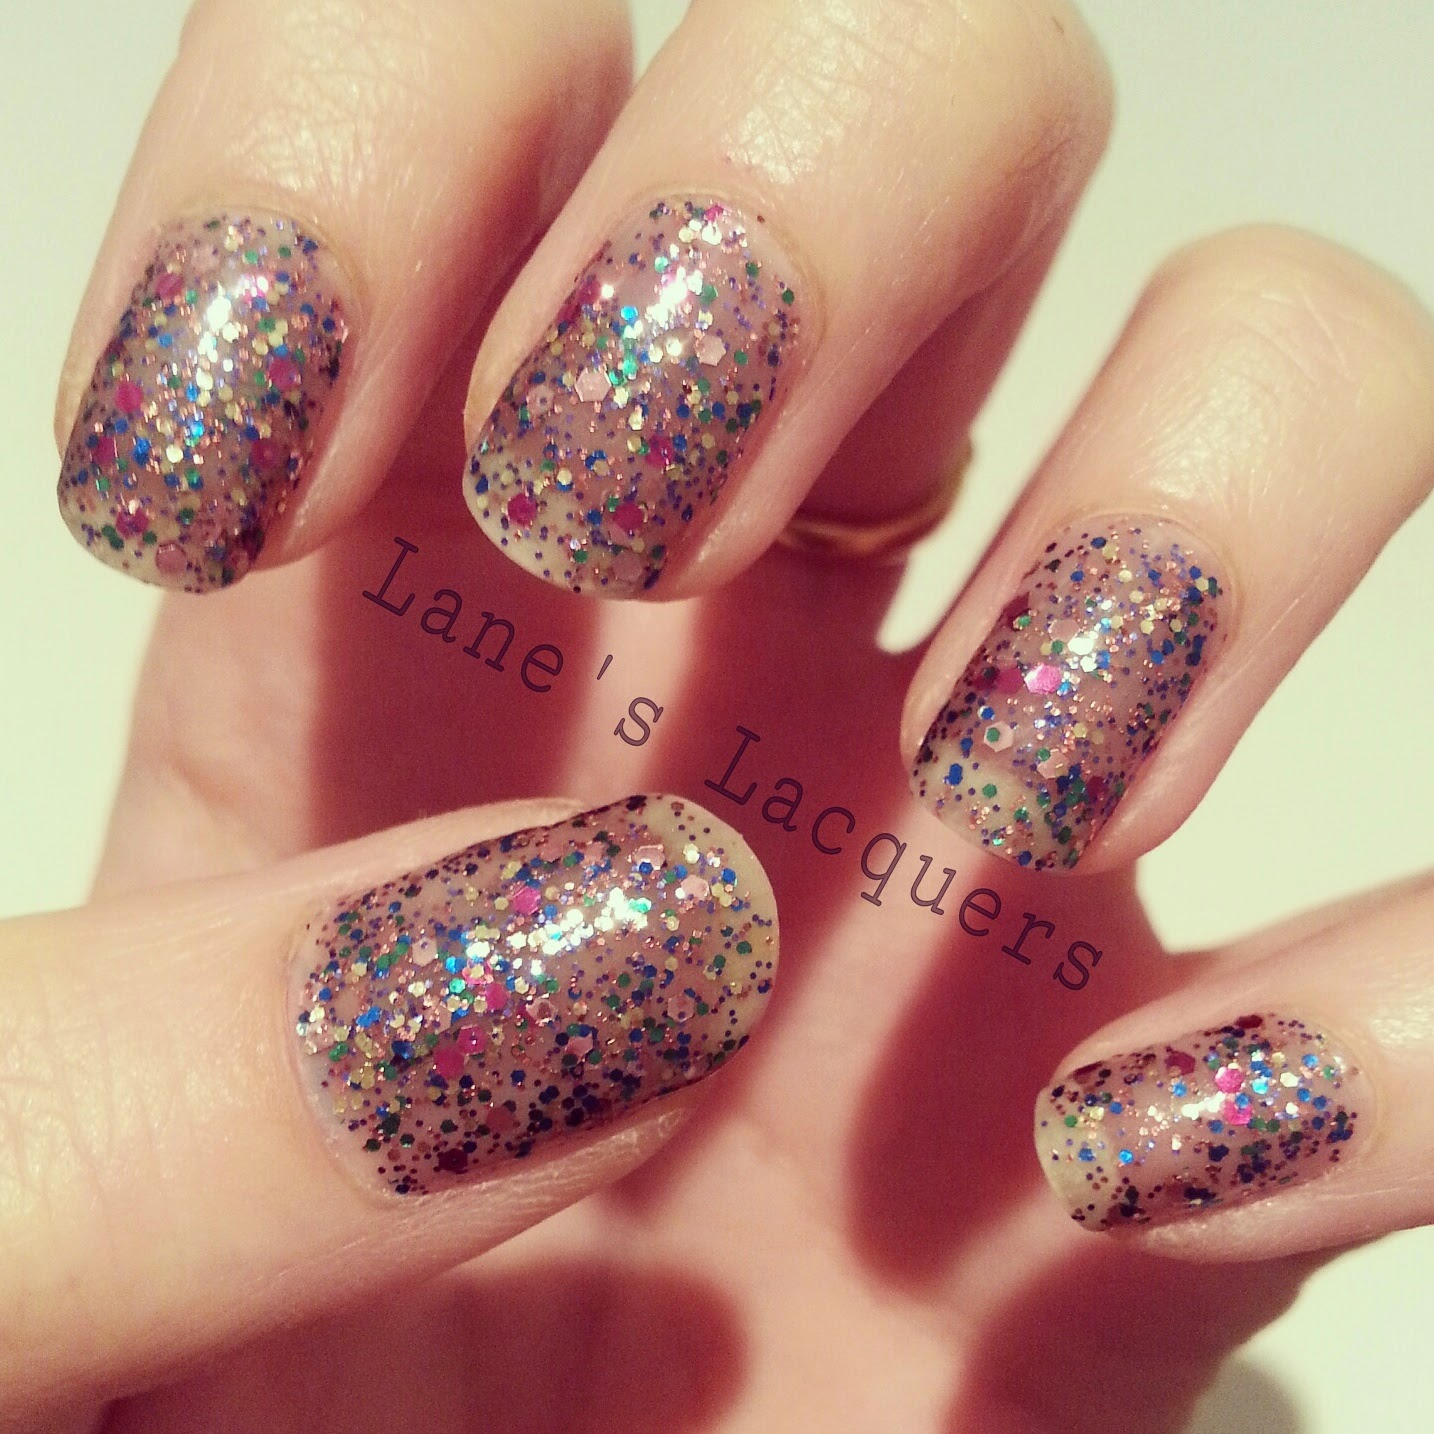 maybelline-colorshow-be-brilliant-spark-the-night-swatch-nails